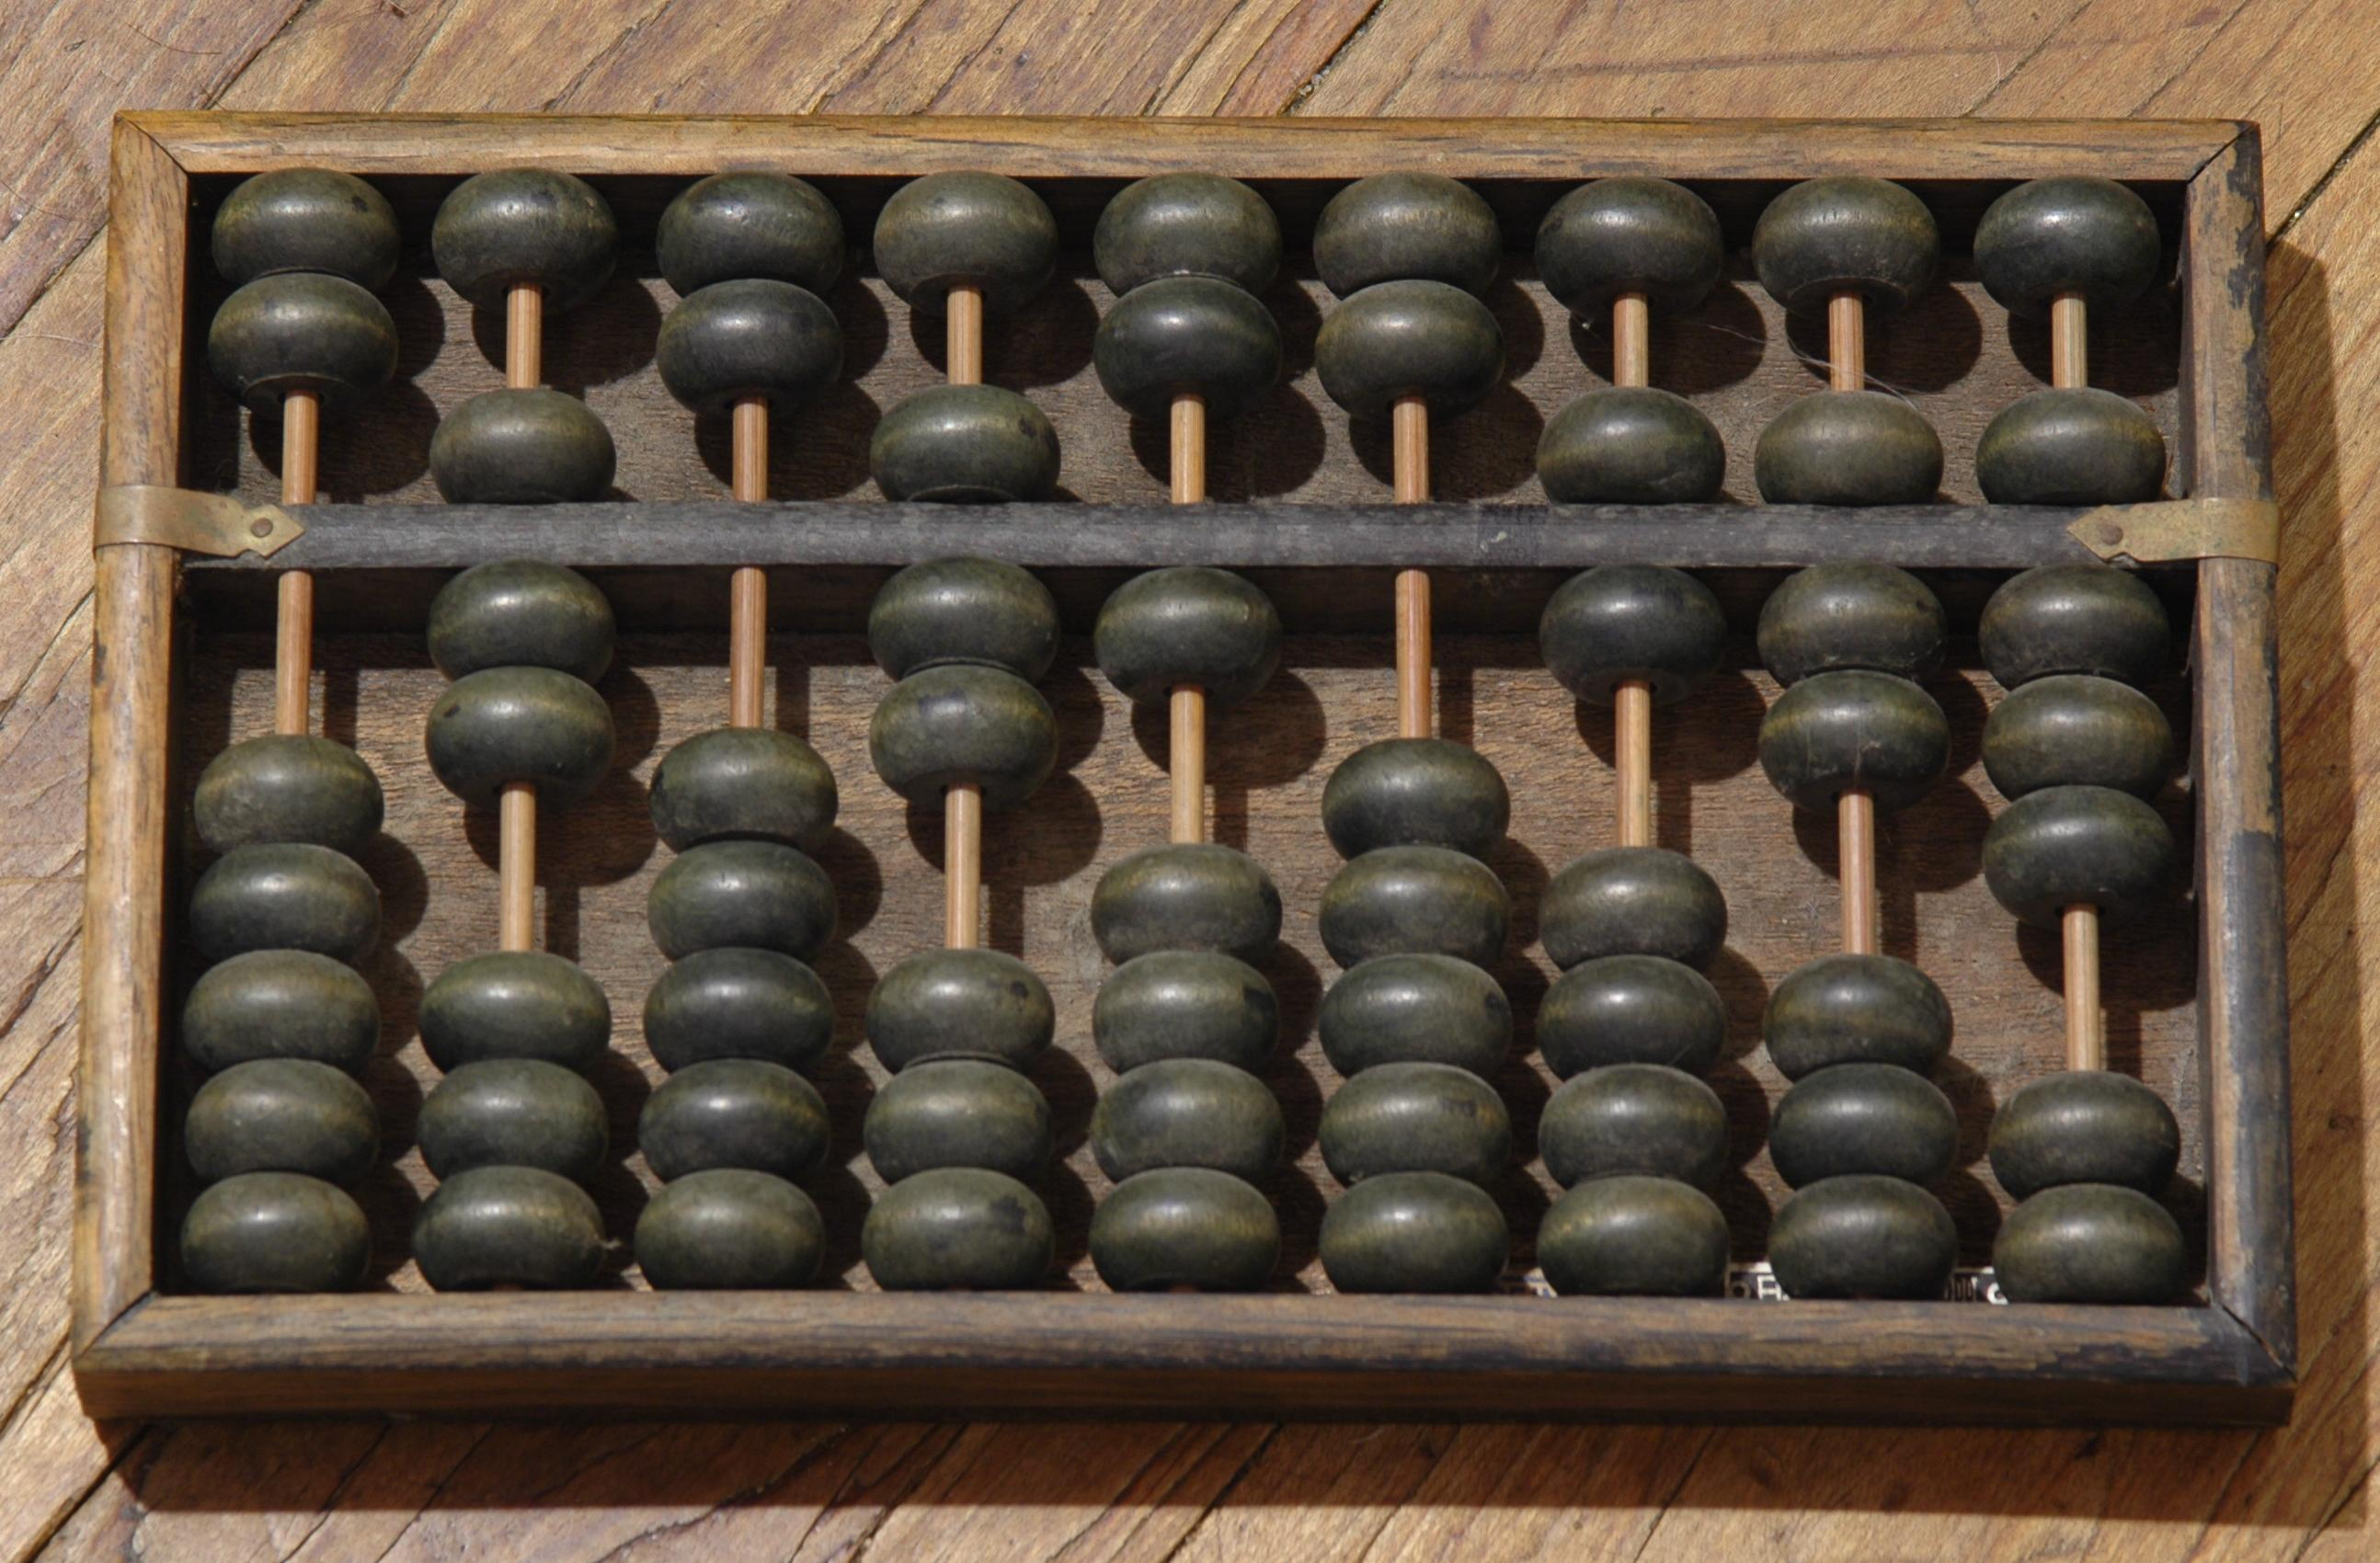 https://upload.wikimedia.org/wikipedia/commons/2/27/Chinese-abacus.jpg